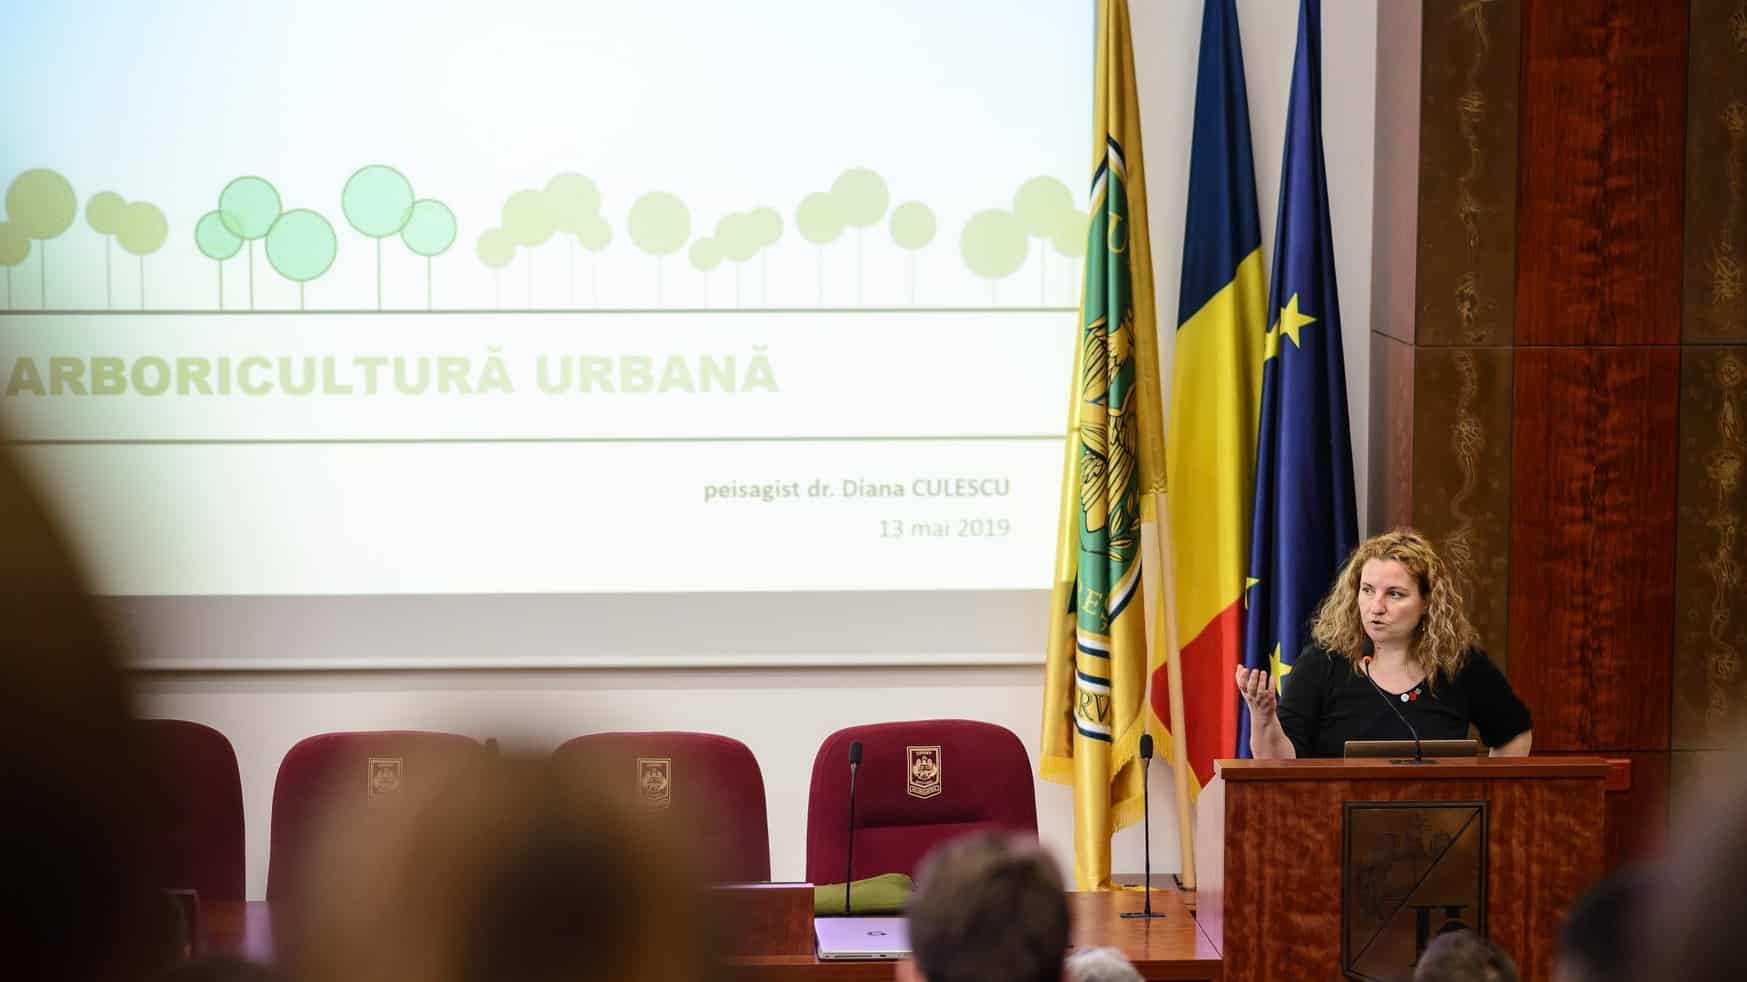 lecturing on urban arboriculture at a professional workshop (photo: Mihai Raitaru)